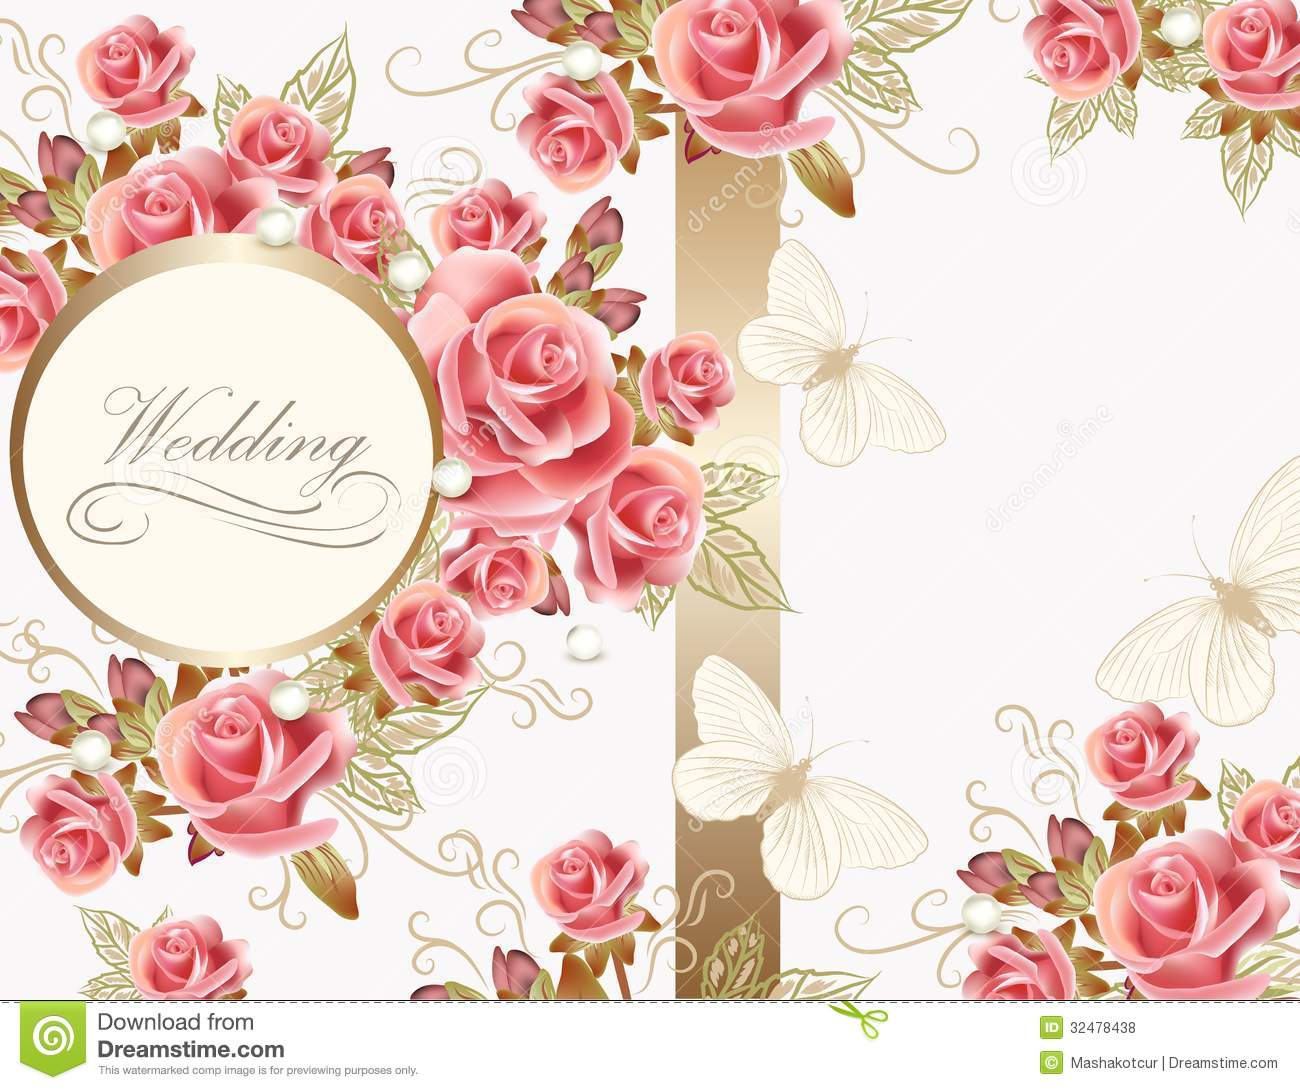 Wedding greeting card design with roses stock vector illustration wedding greeting card design with roses kristyandbryce Image collections